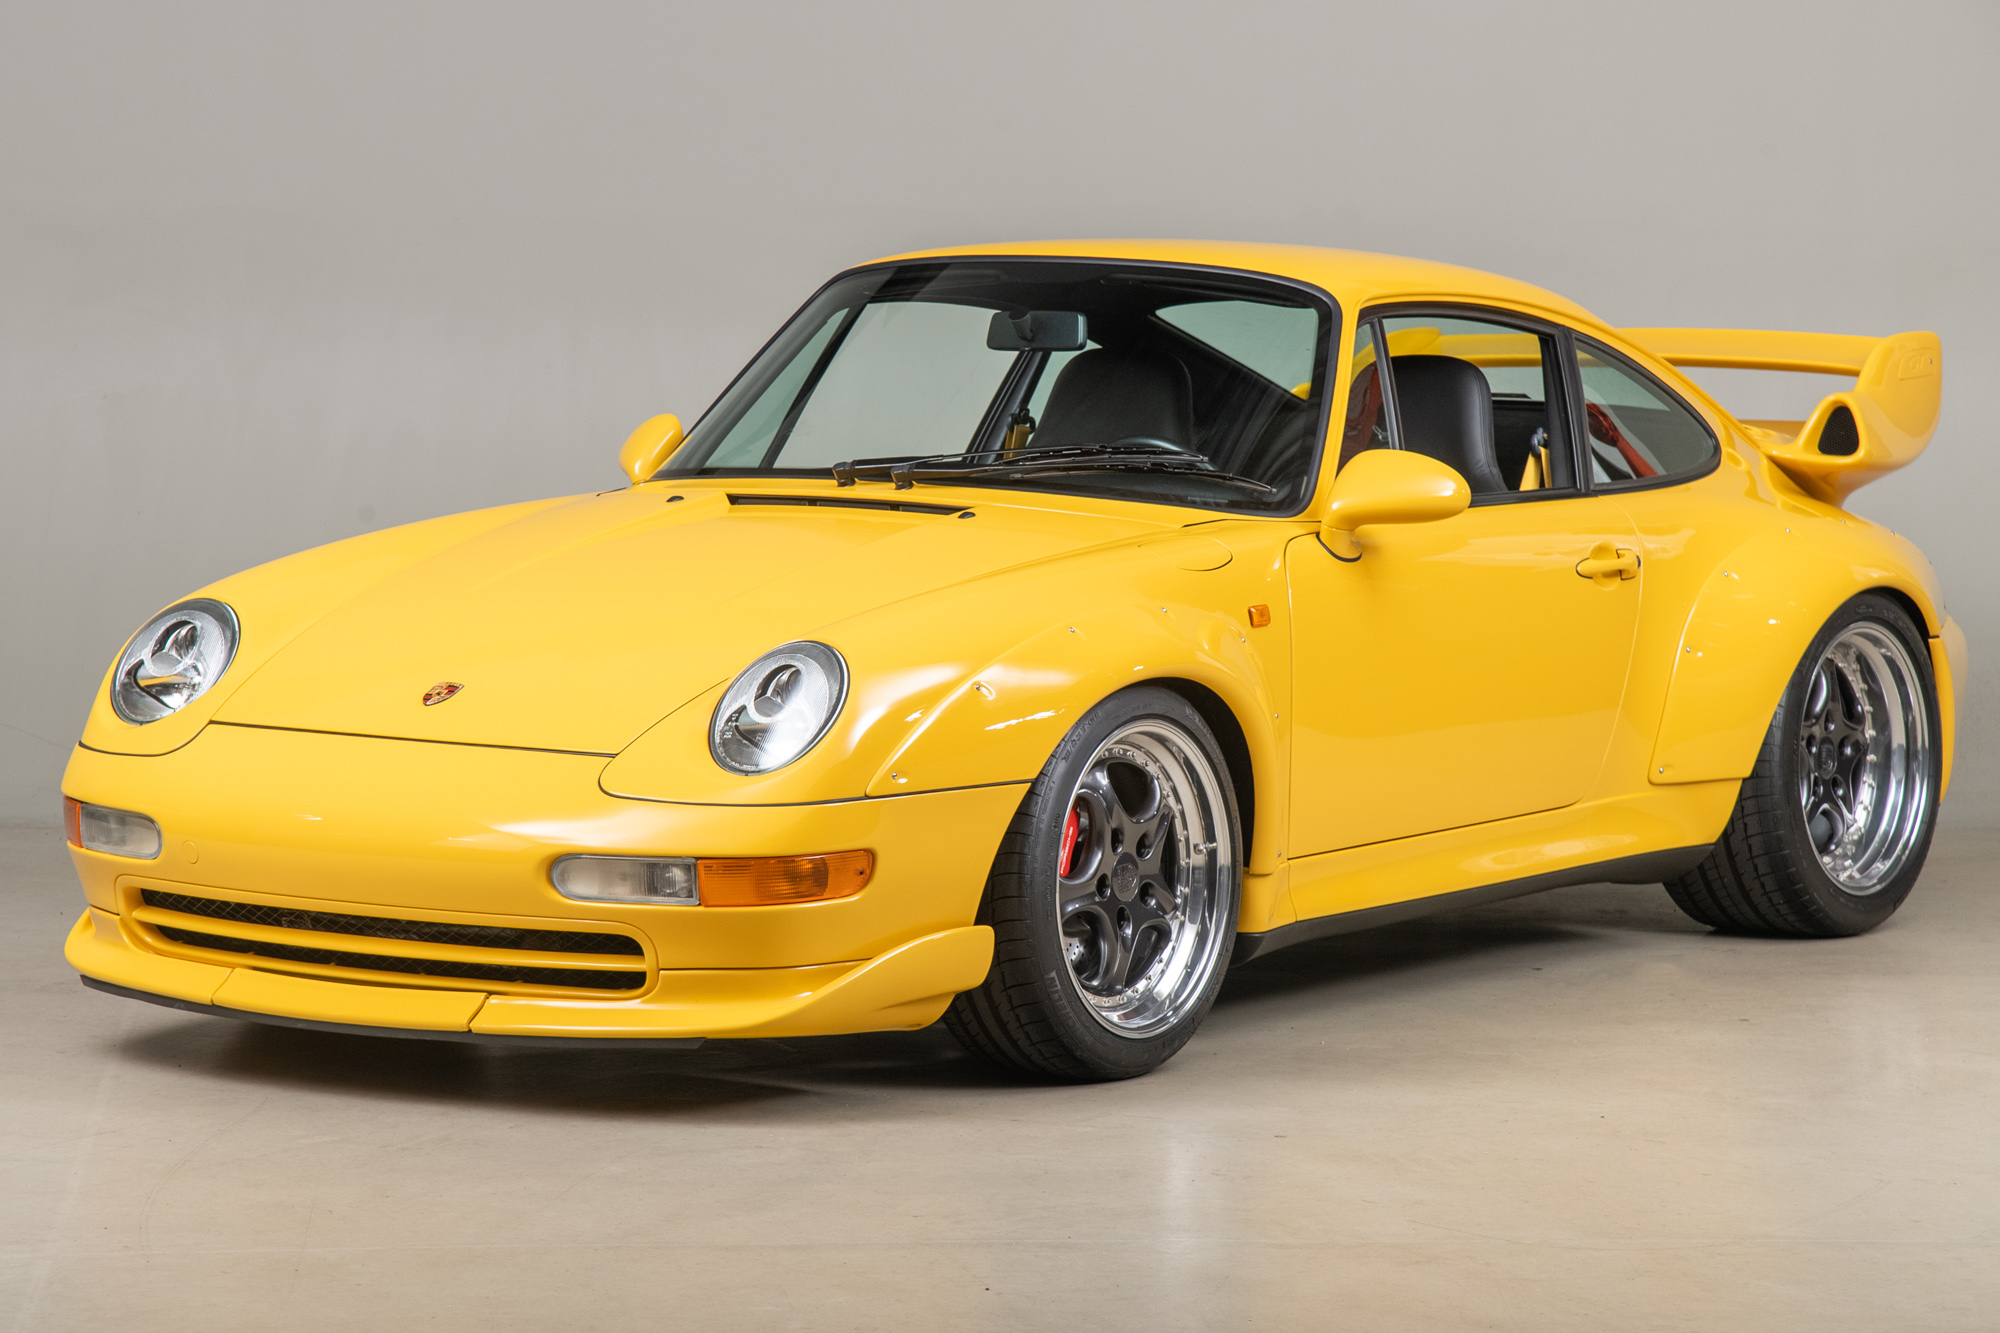 1996 Porsche 911 GT2 , SPEED YELLOW, VIN WP0ZZZ99ZTS392194, MILEAGE 26321